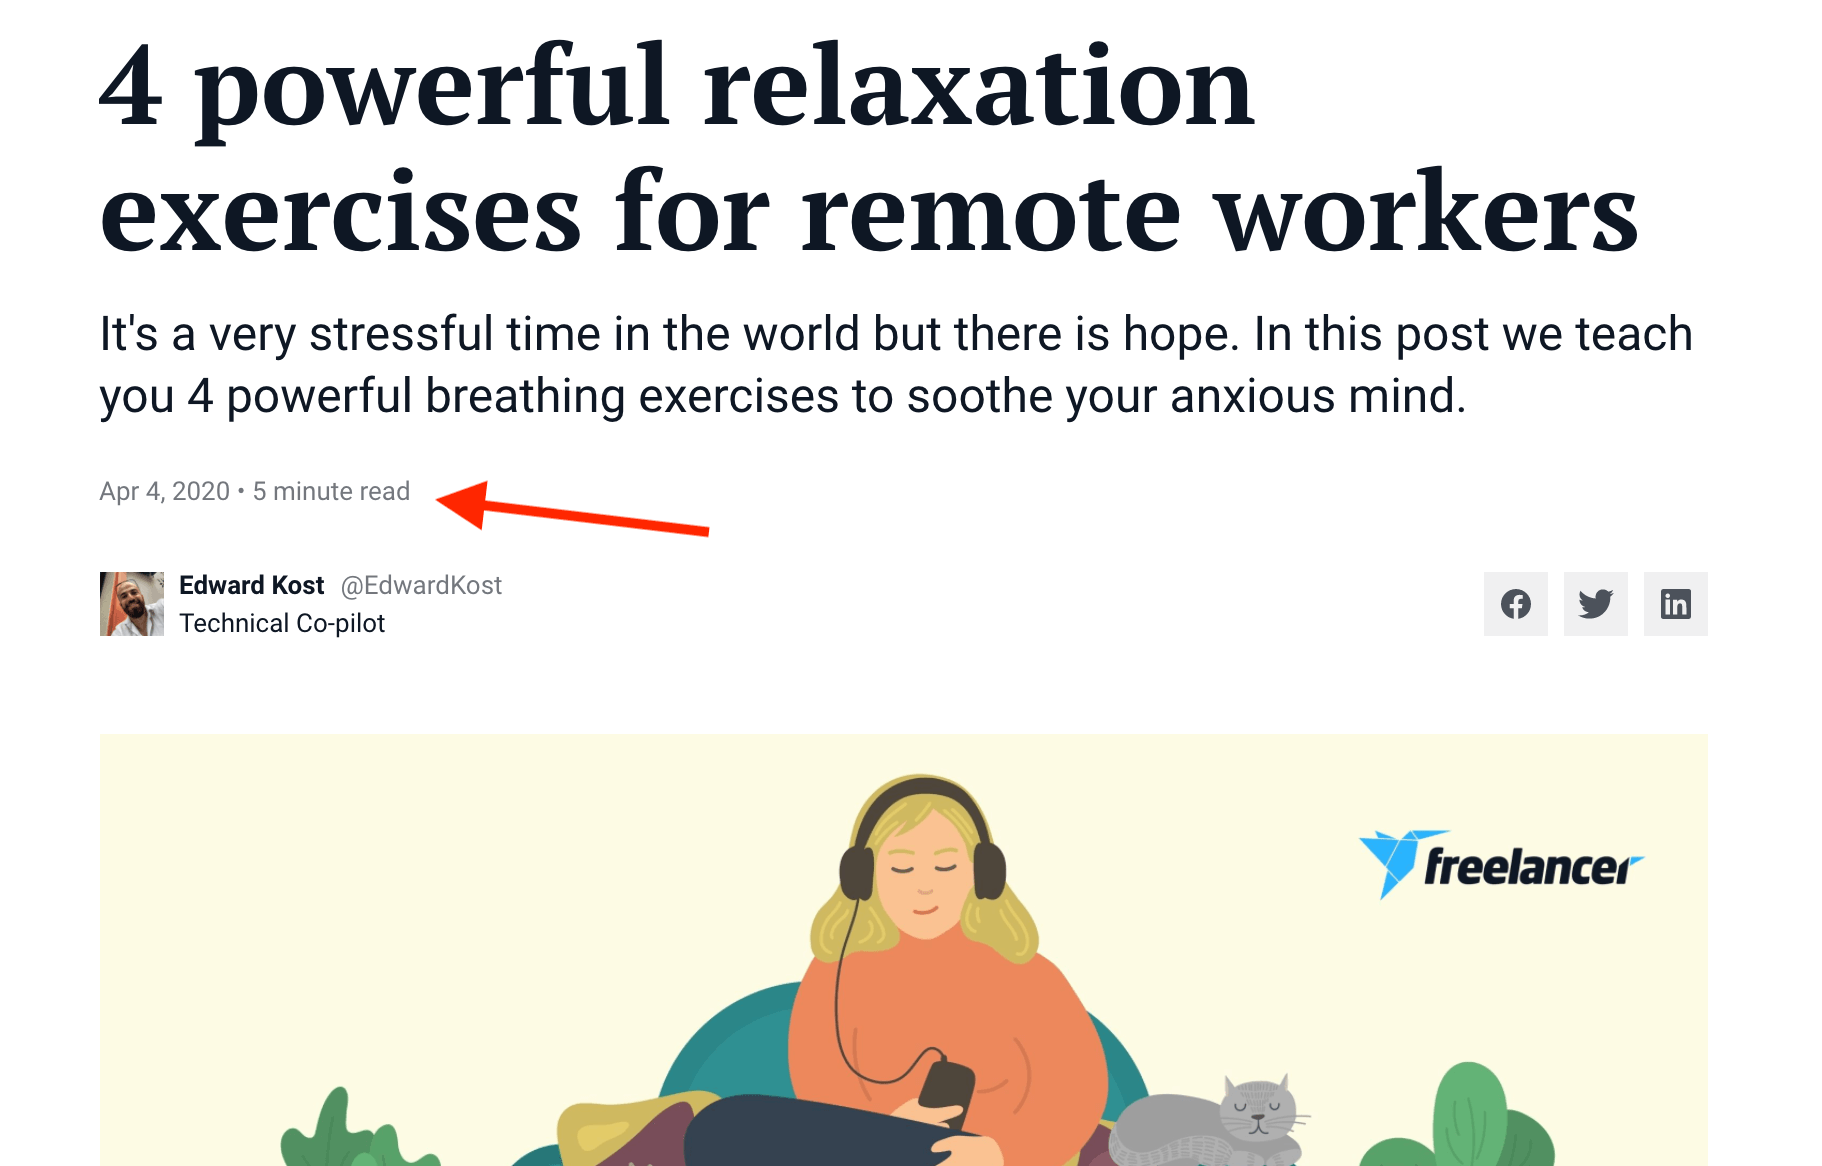 relaxation techniques for remote workers